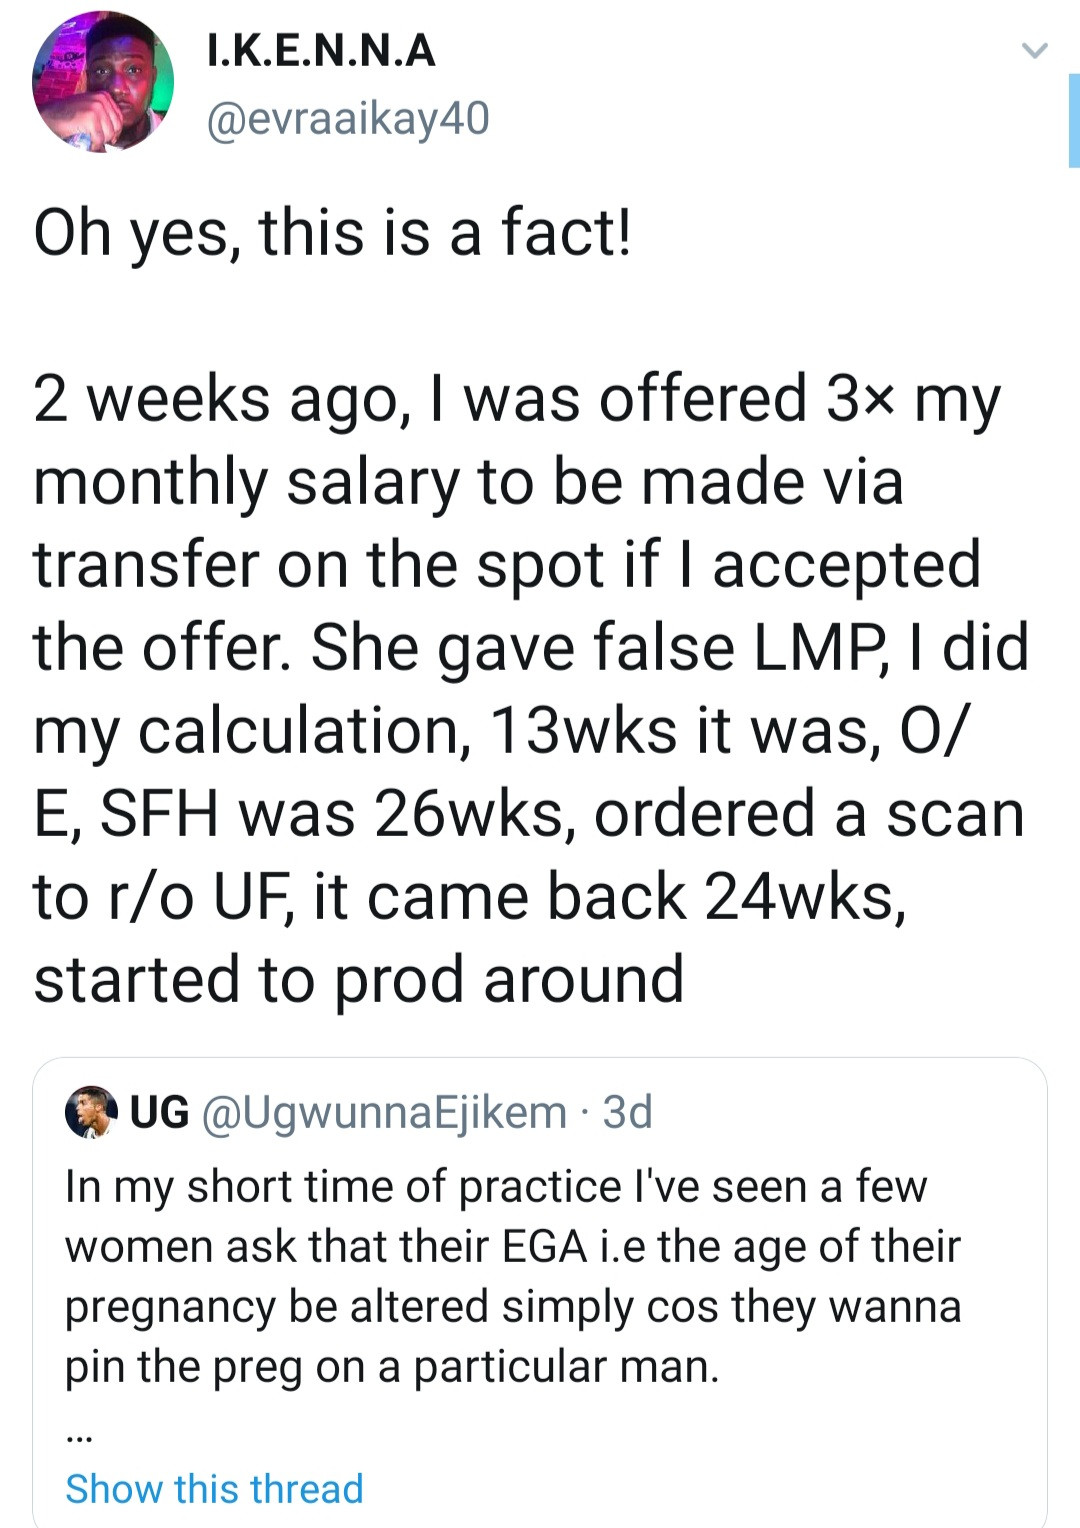 Doctor claims woman offered him triple his salary to lie about the age of her pregnancy so she could pin it on a richer man